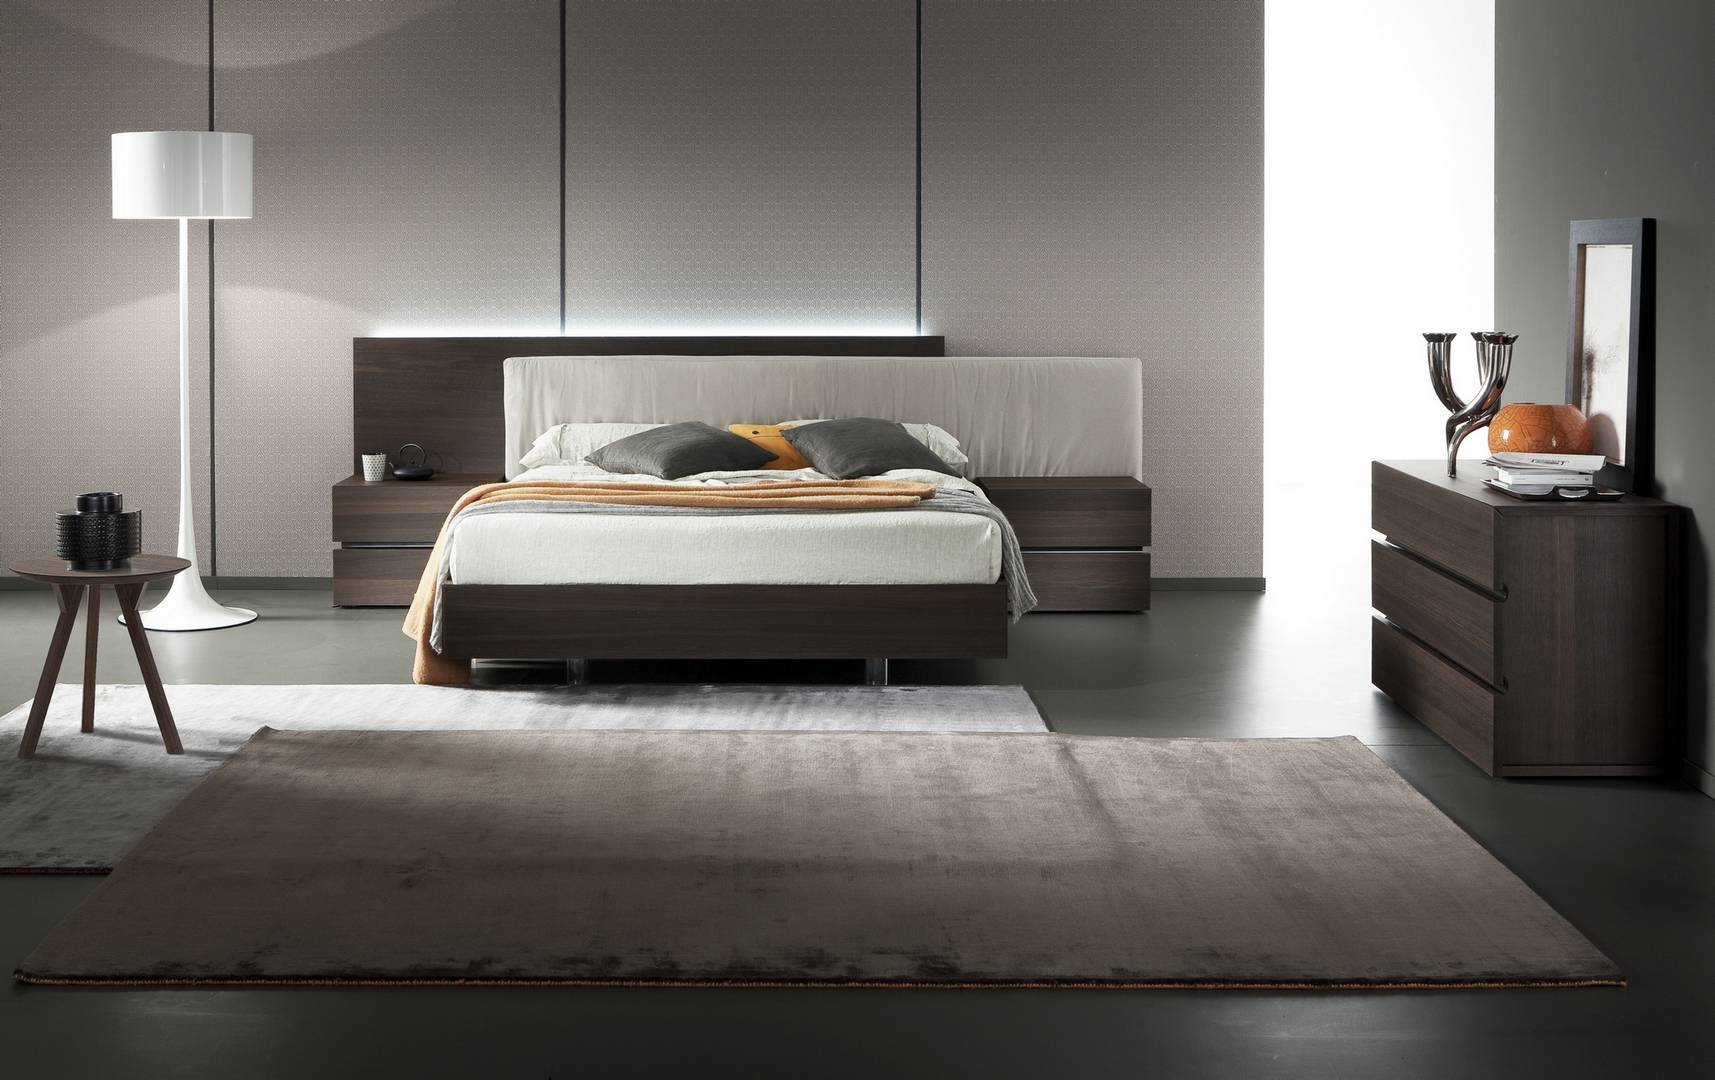 king sets to bed platform com view bedroom s couple furniture impera modern lacquer design hgnv size in gallery your beautify contemporary